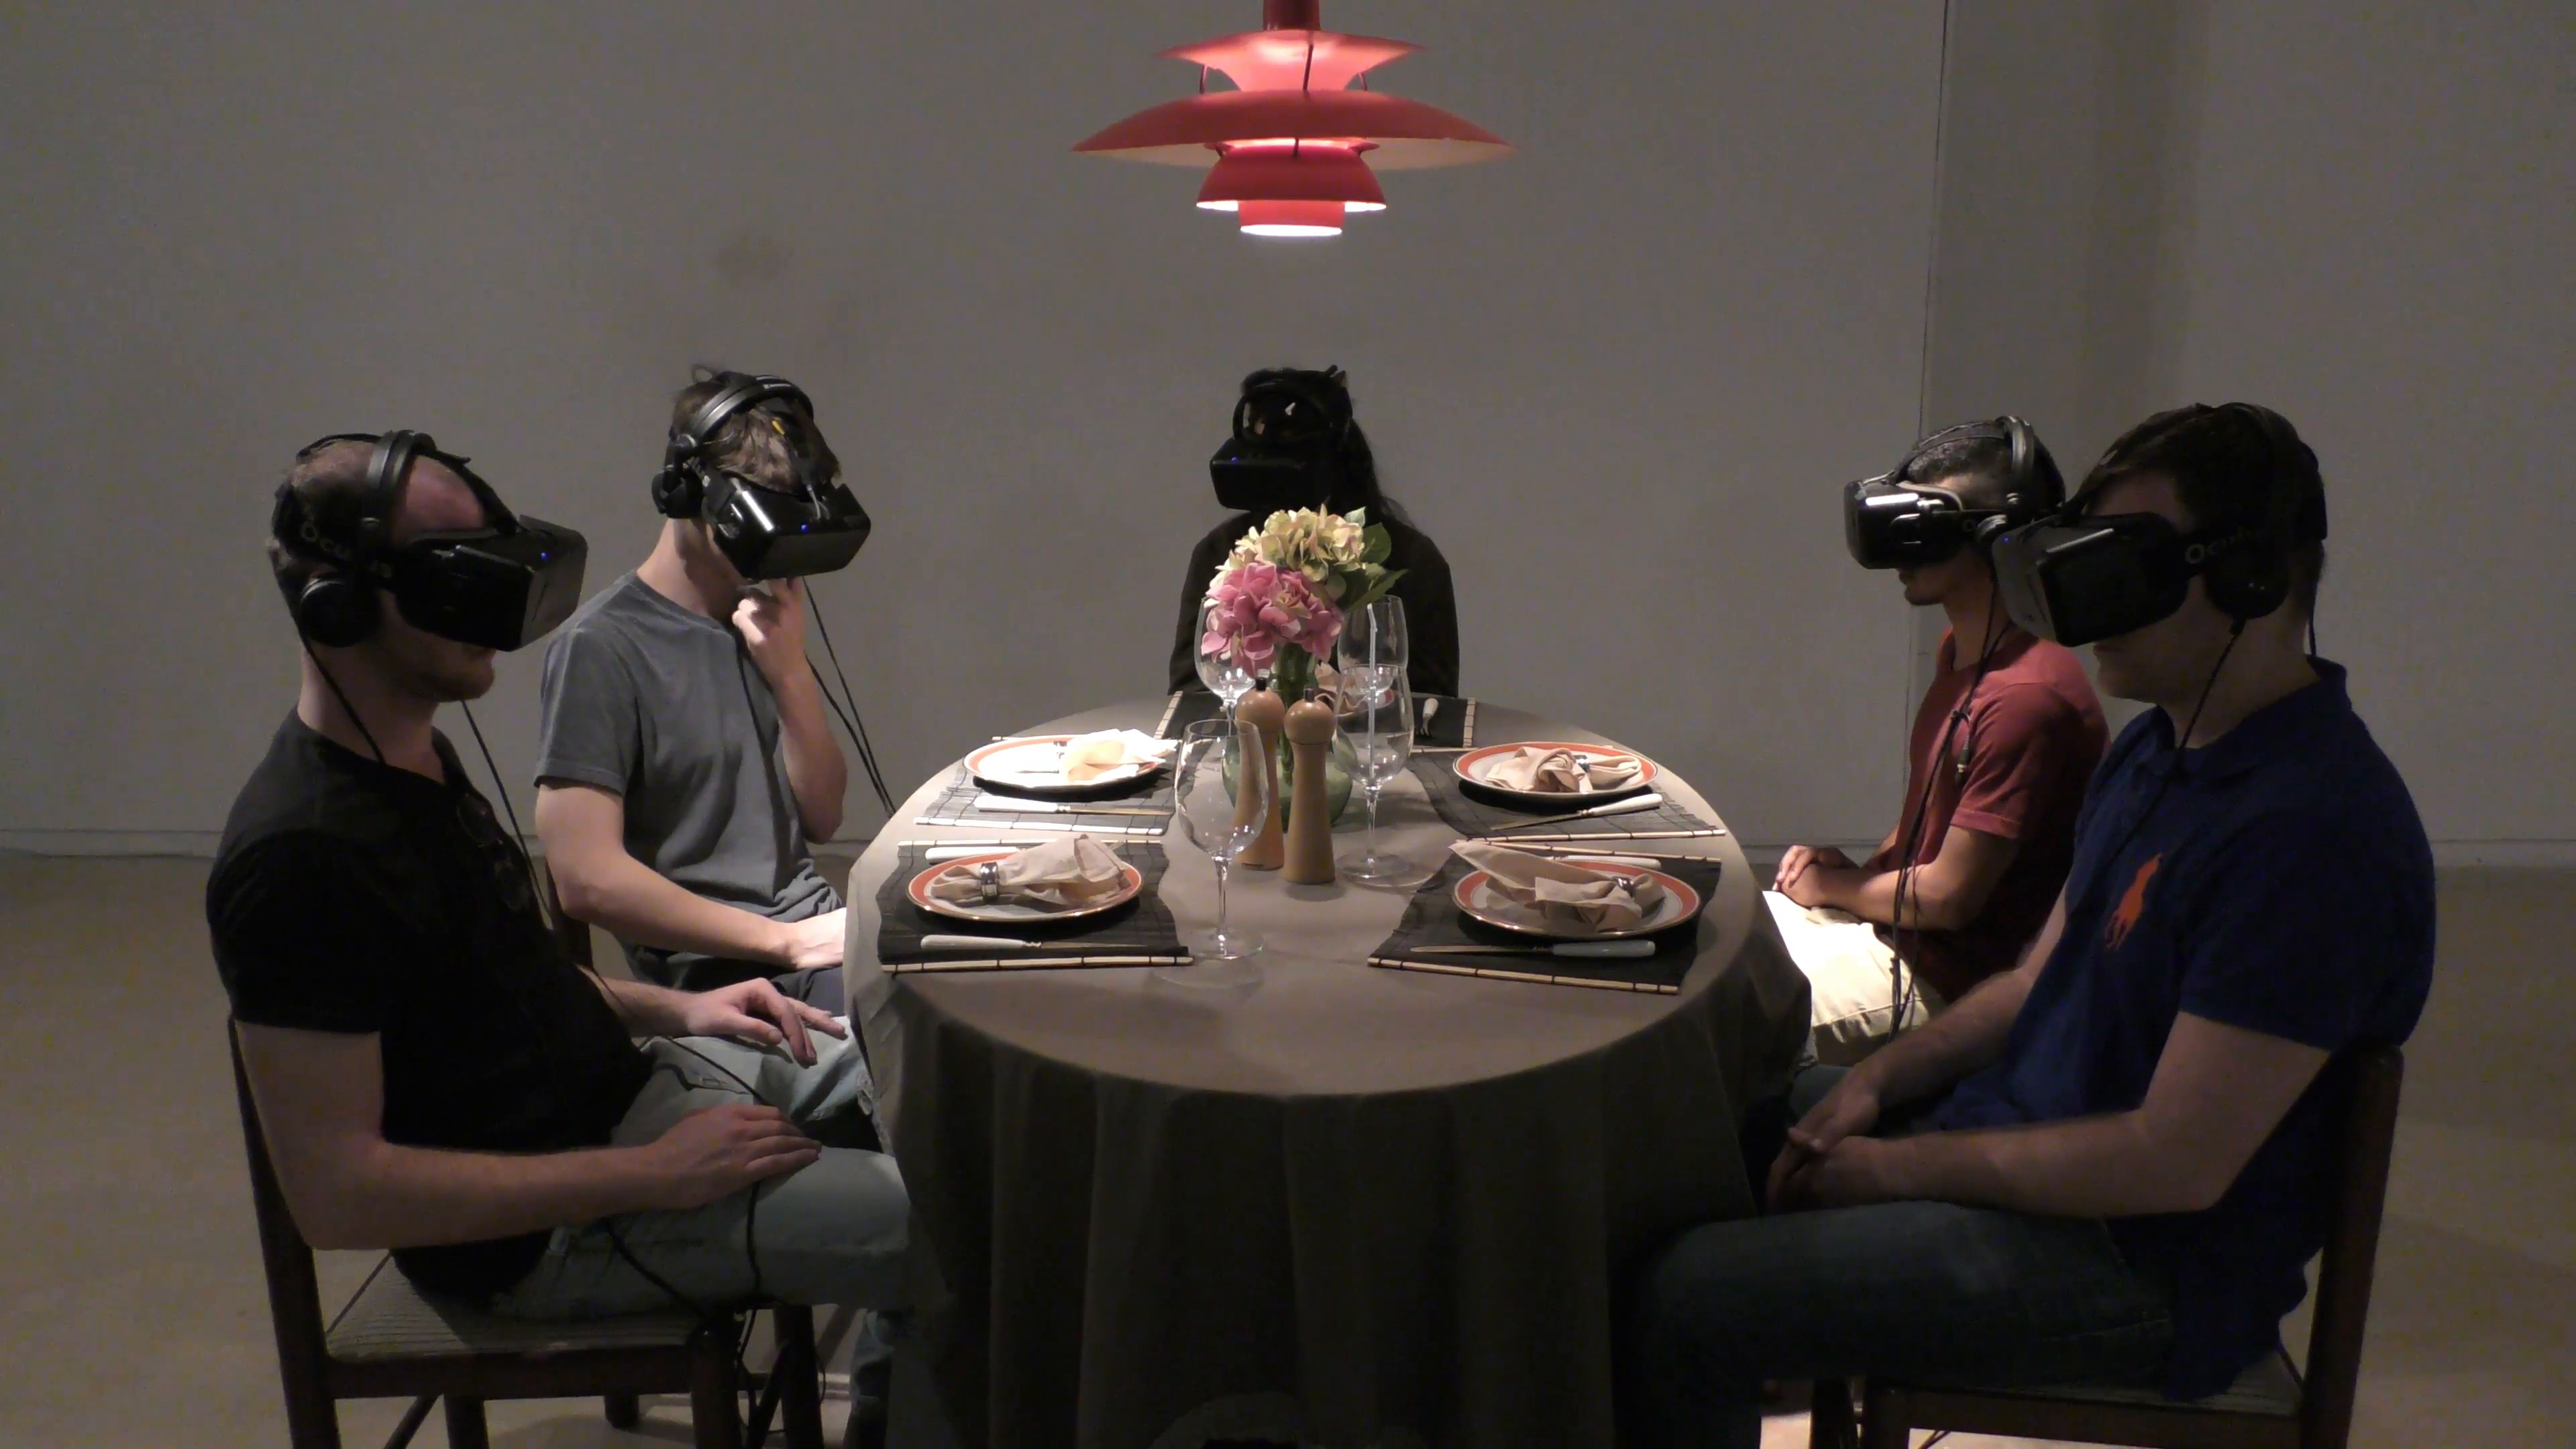 Facebook wants to solve impersonal conversations with VR